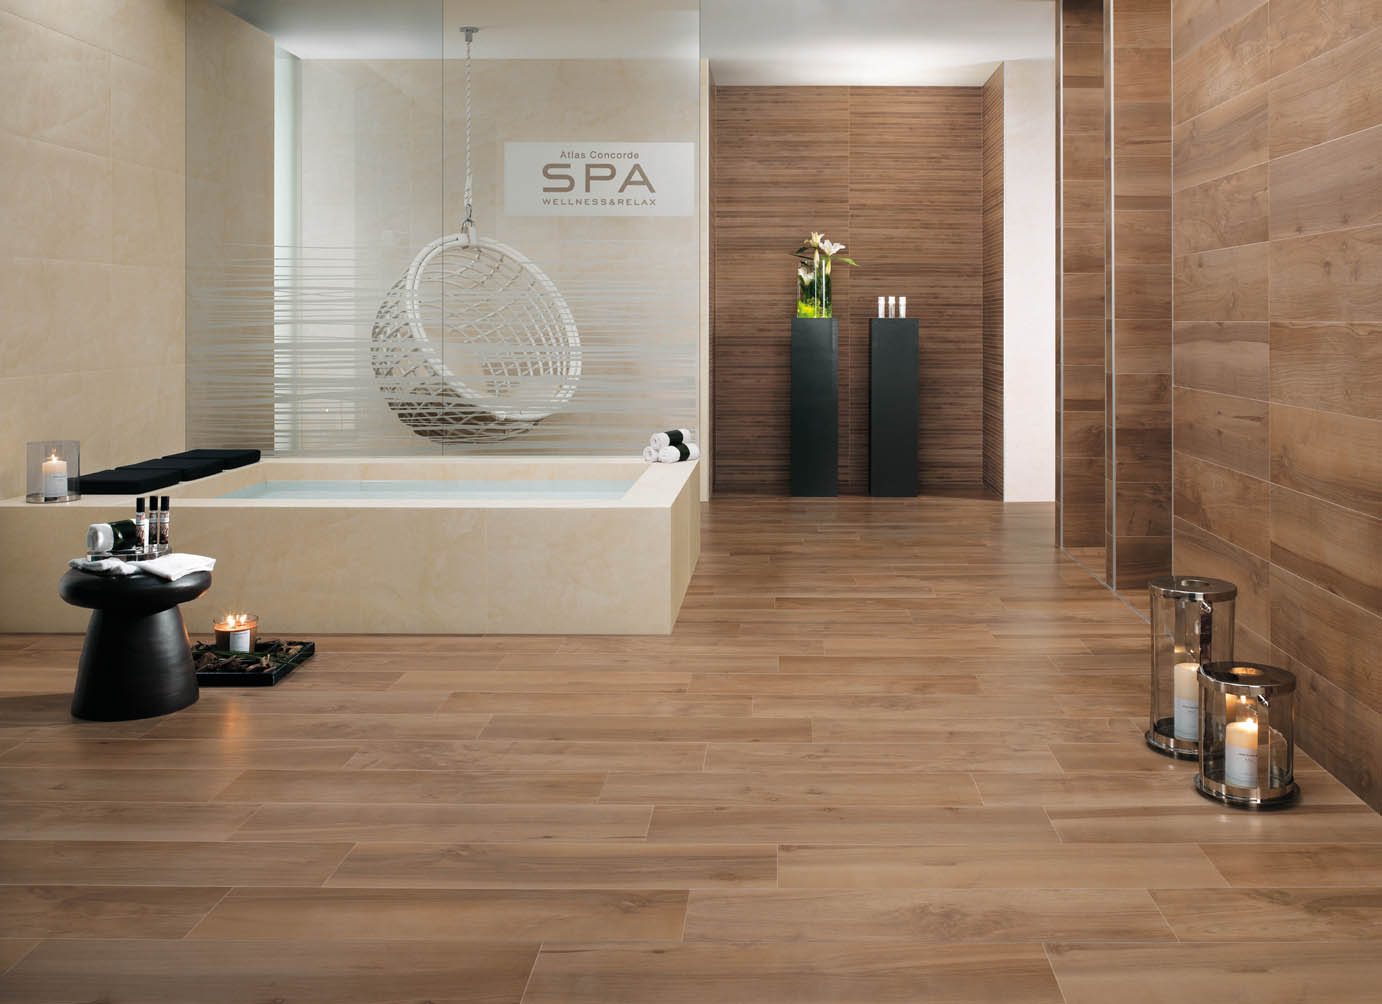 Carrelages int imitations parquets bois duc carrelages et bains for Porcelanosa carrelage imitation parquet